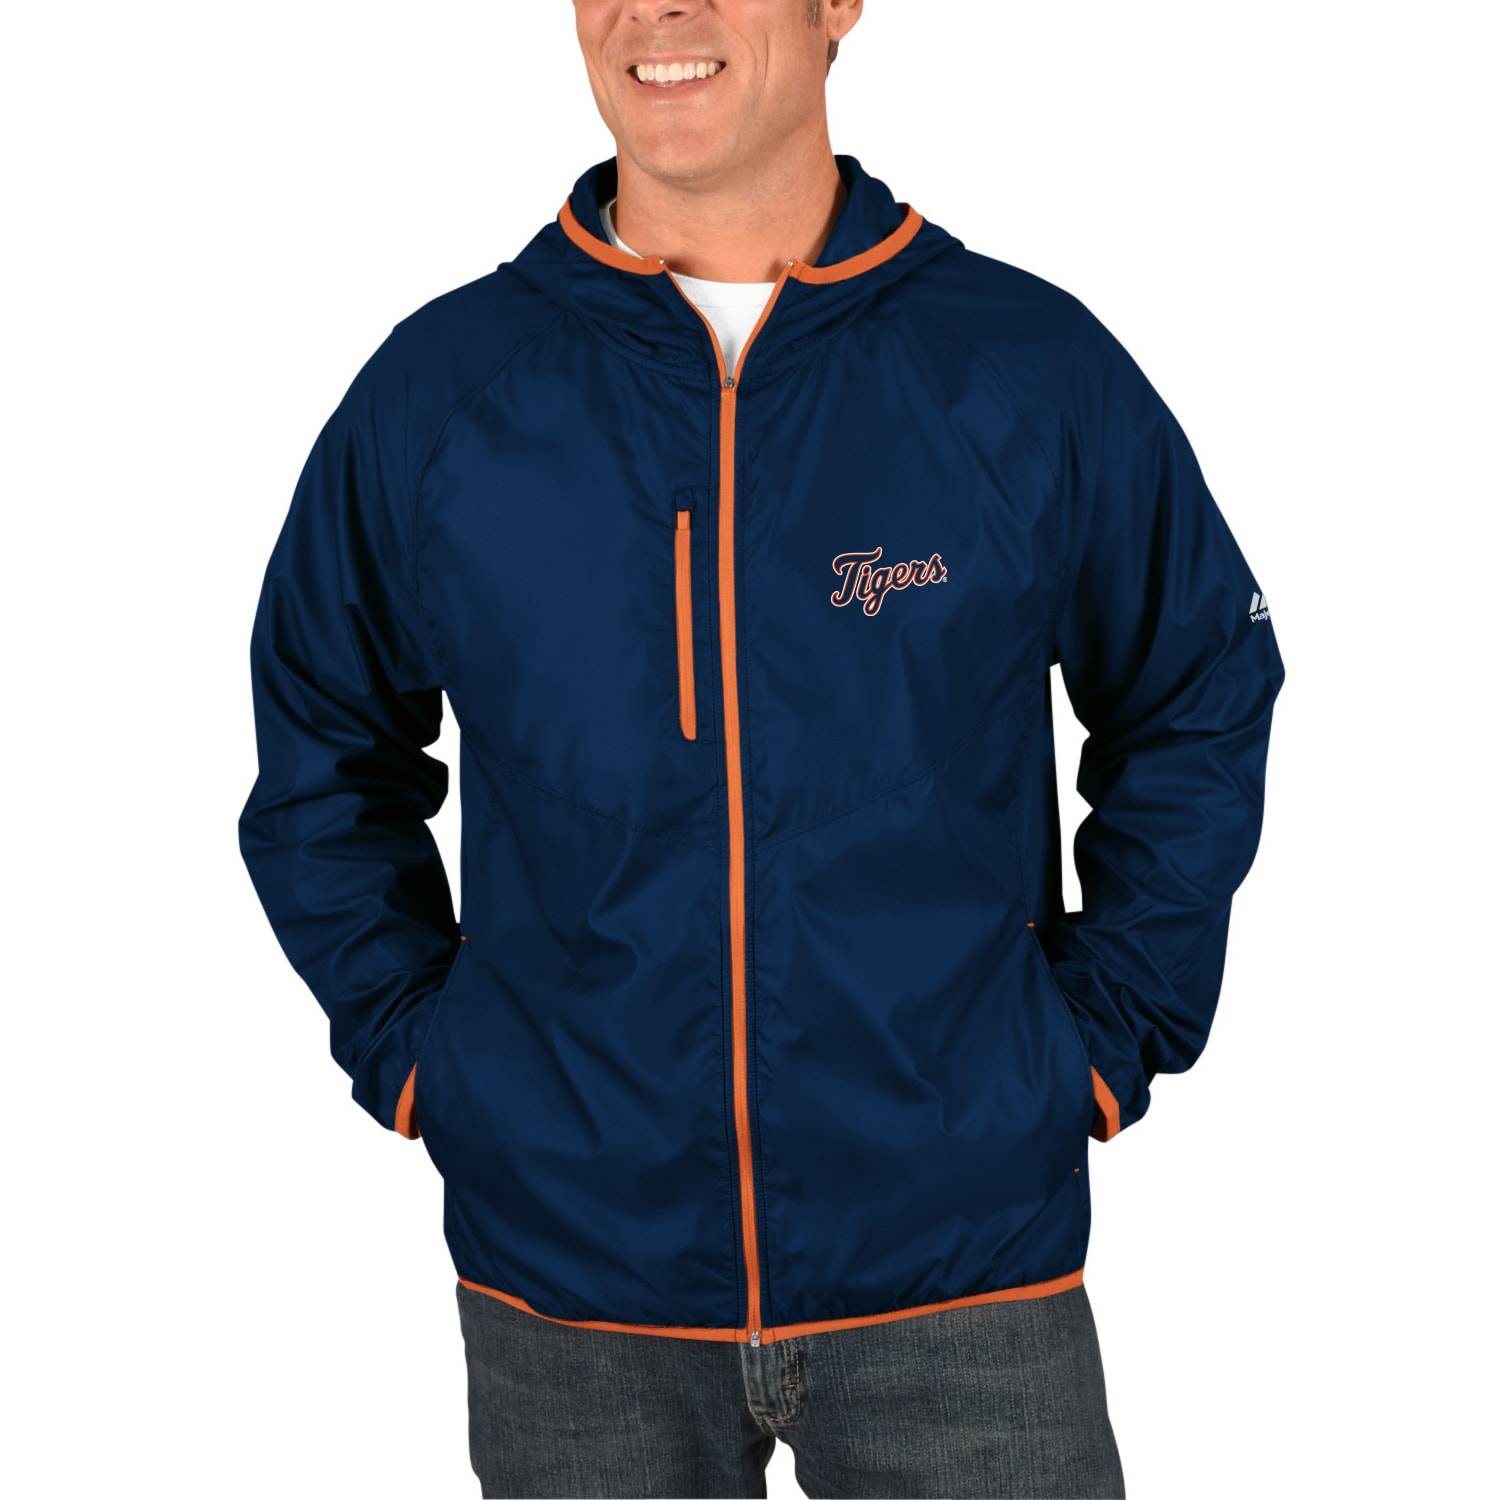 Detroit Tigers Majestic Weakness is a Choice Full-Zip Jacket - Navy